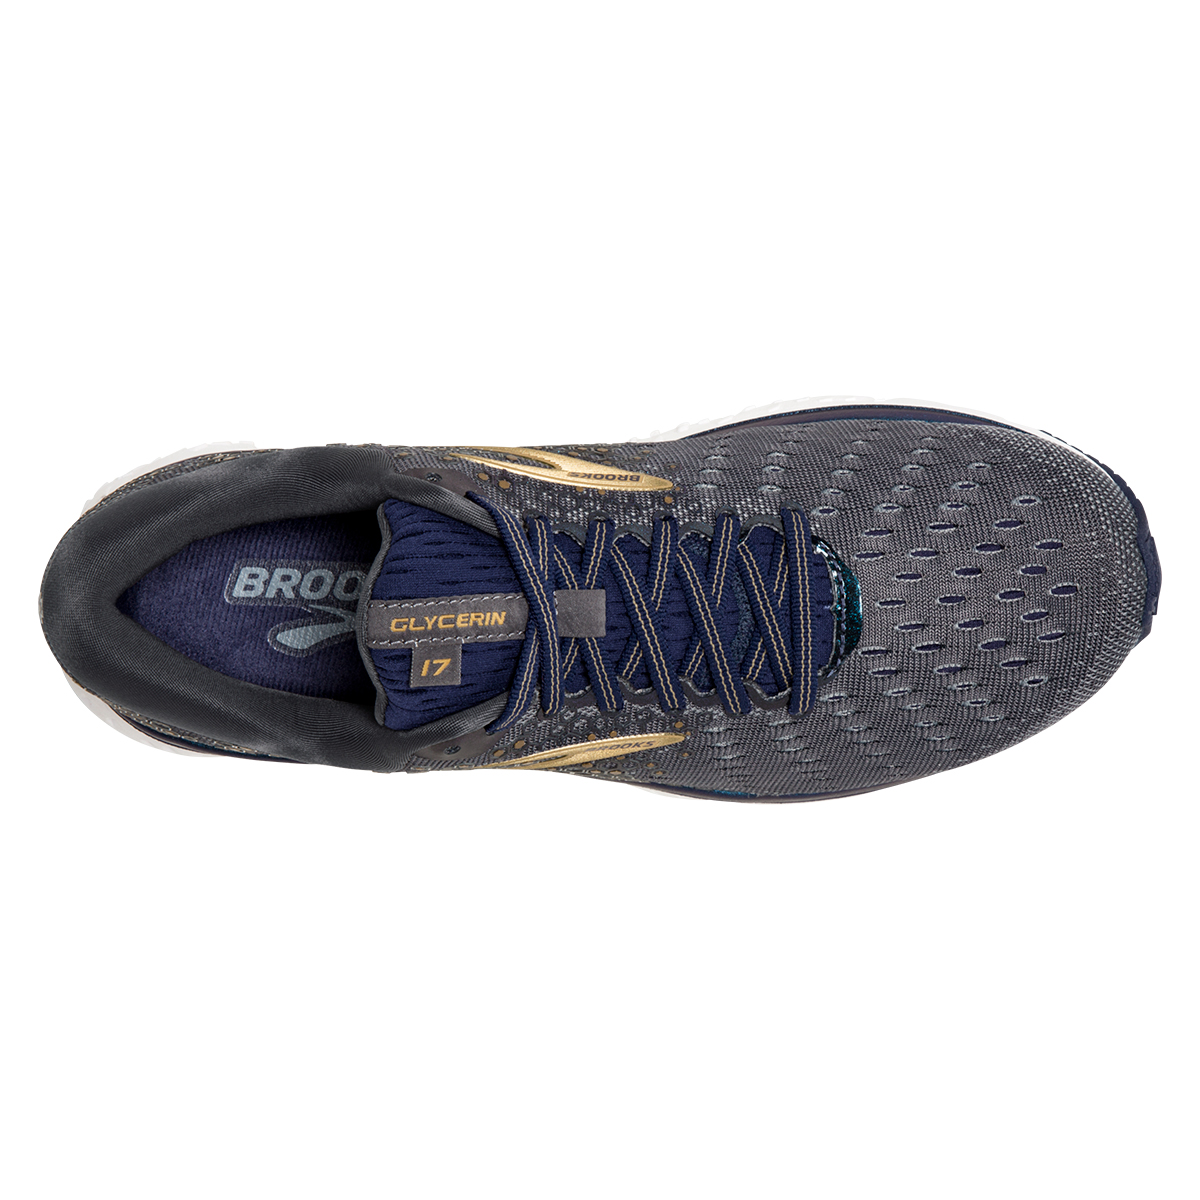 Men's Brooks Glycerin 17 Running Shoe - Color: Grey/Navy/Gold (Regular Width) - Size: 7, Grey/Navy/Gold, large, image 3